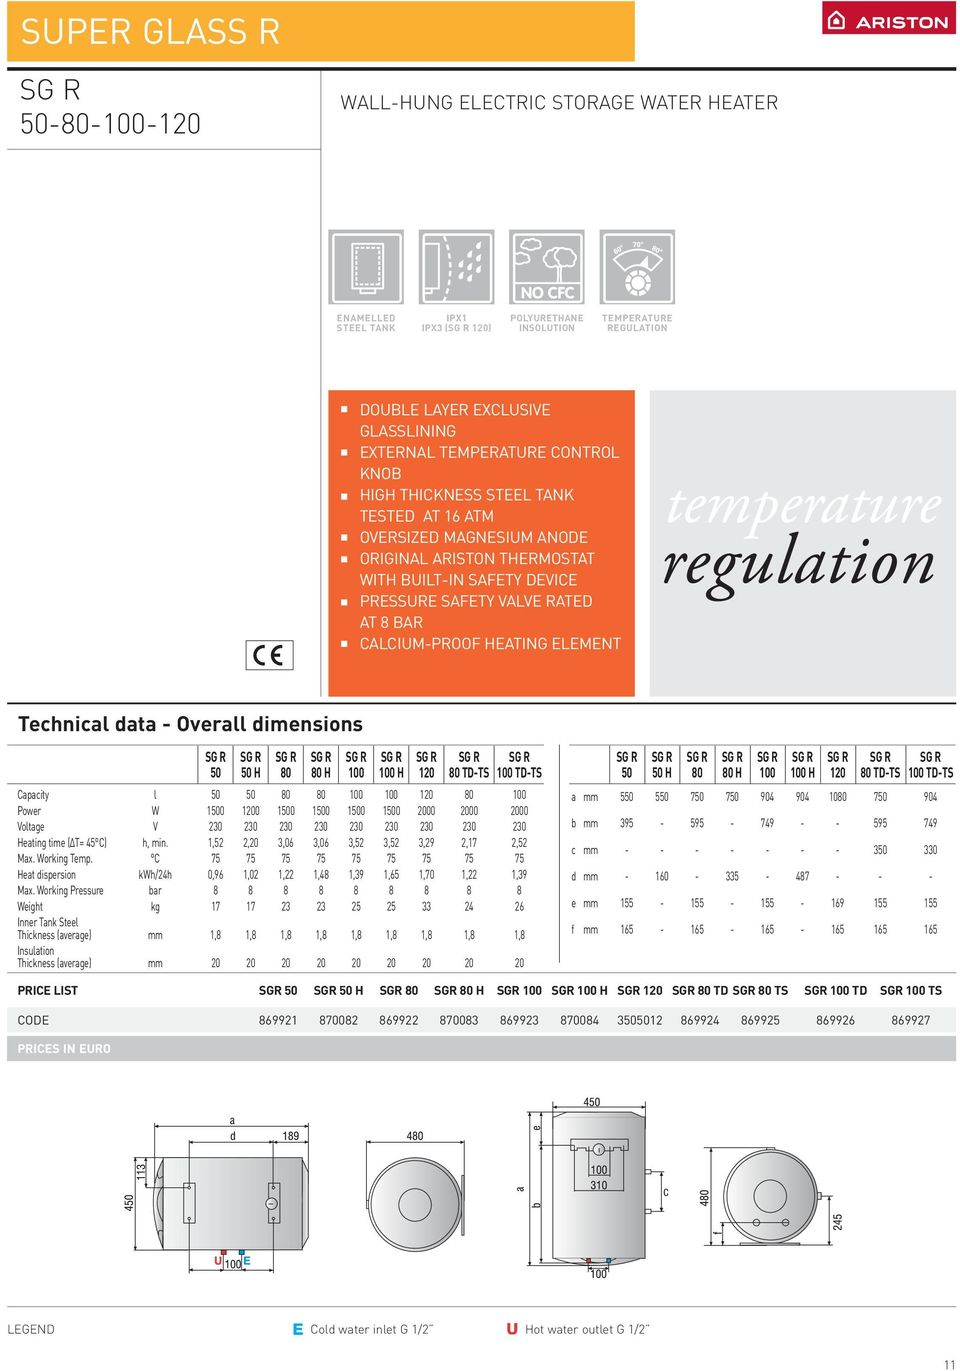 March 2007 Edition Water Heaters General Catalogue Pdf Free Circuit Diagrams 4u 230v Led Tube Light Diagram H 80 100 120 Td Ts